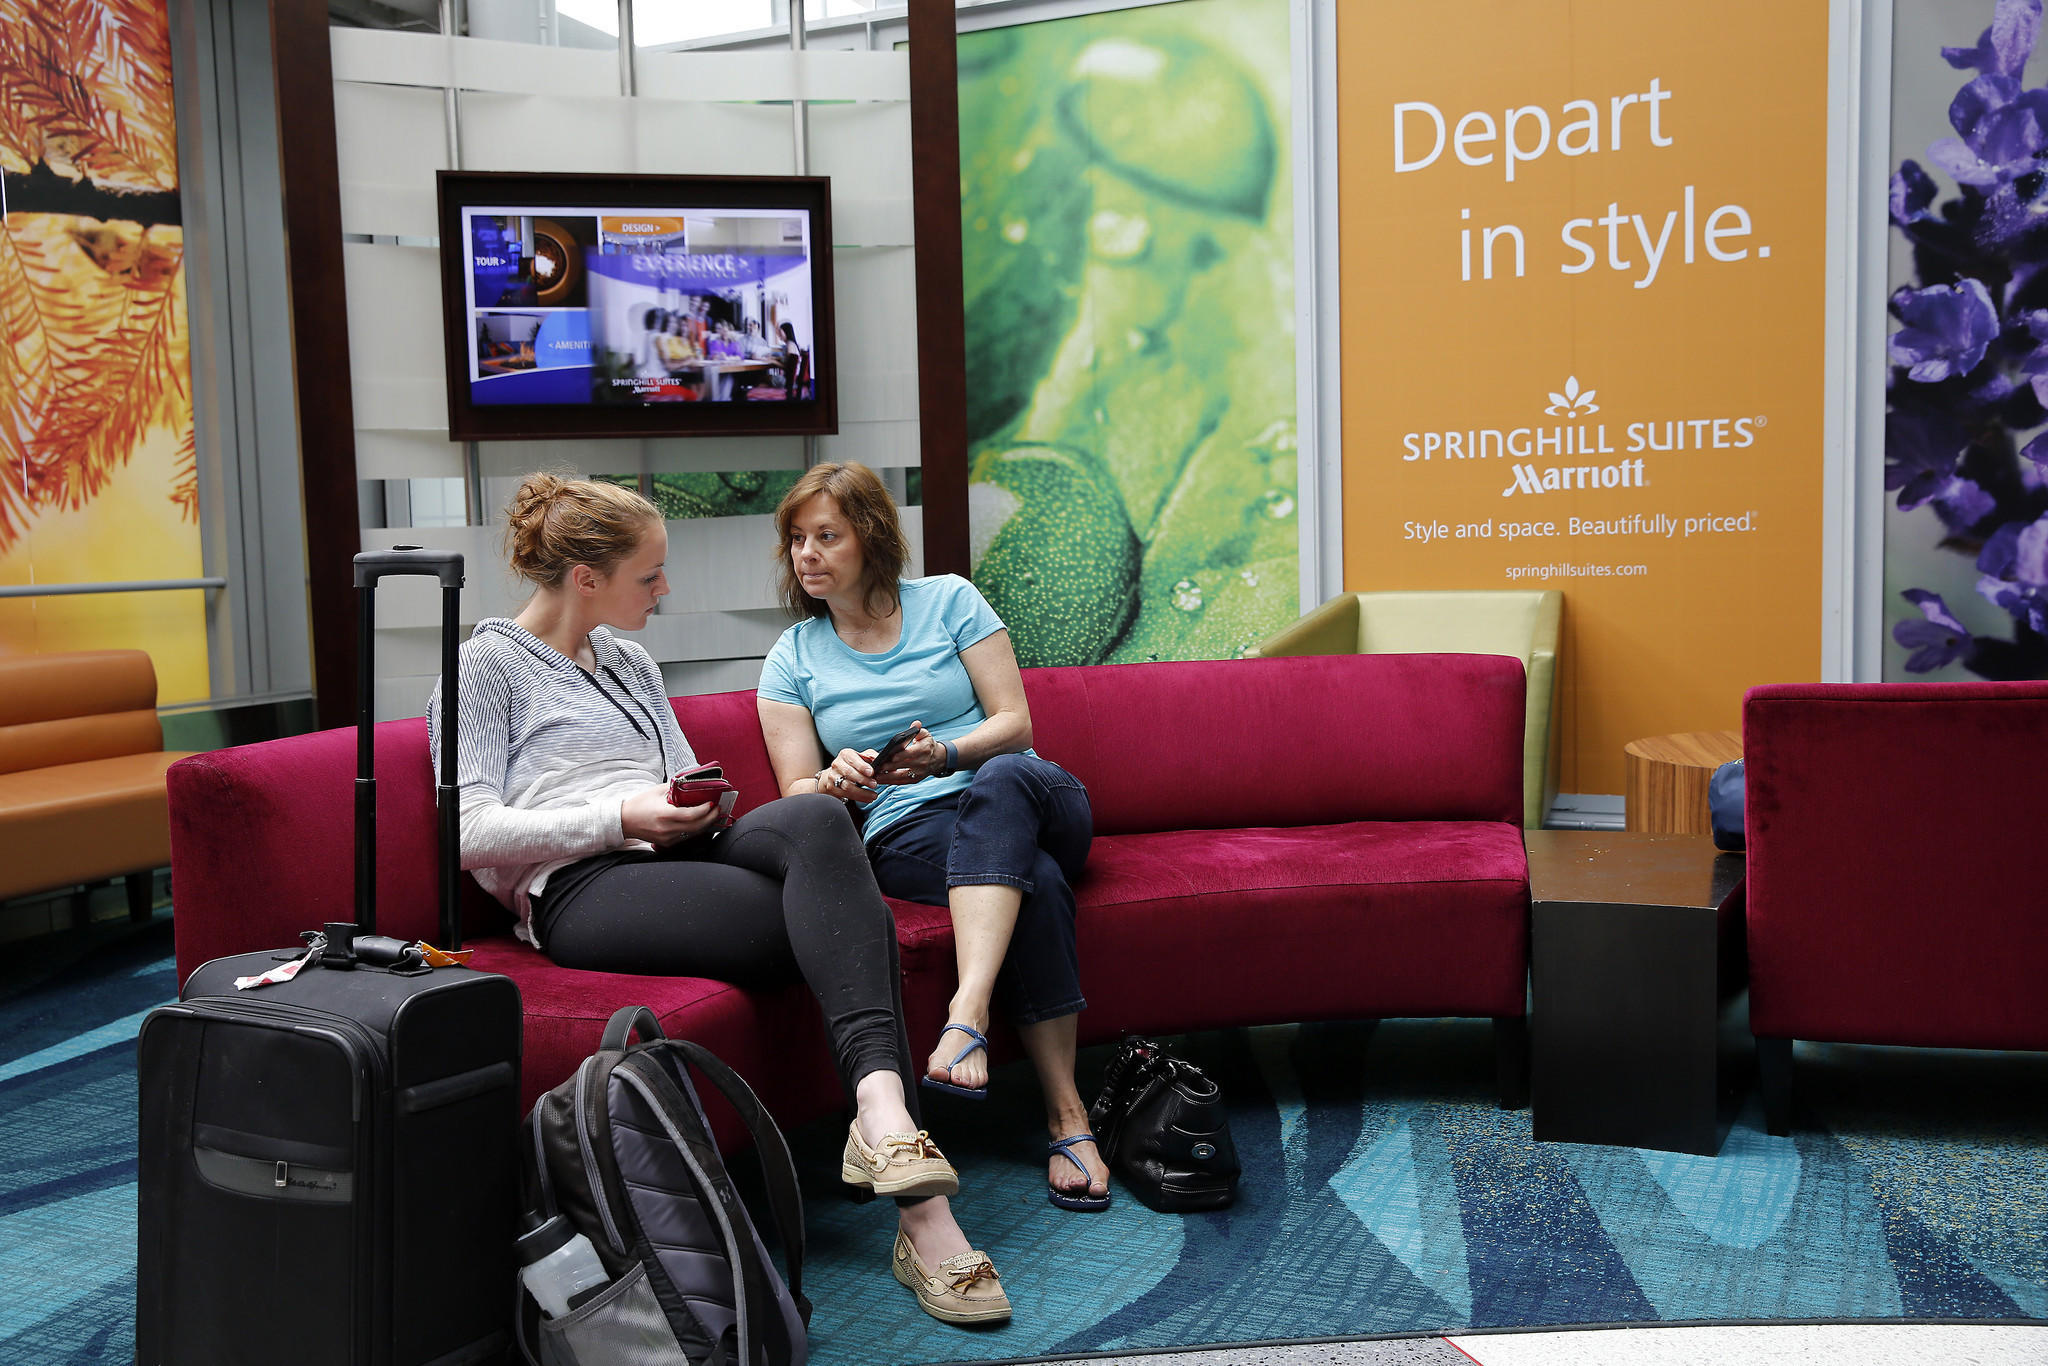 Kaitlyn King, left, and her mother Donna King sit on one of the comfortable, living room furniture style seating in the pre-security area at O'Hare International Airport terminal 1.